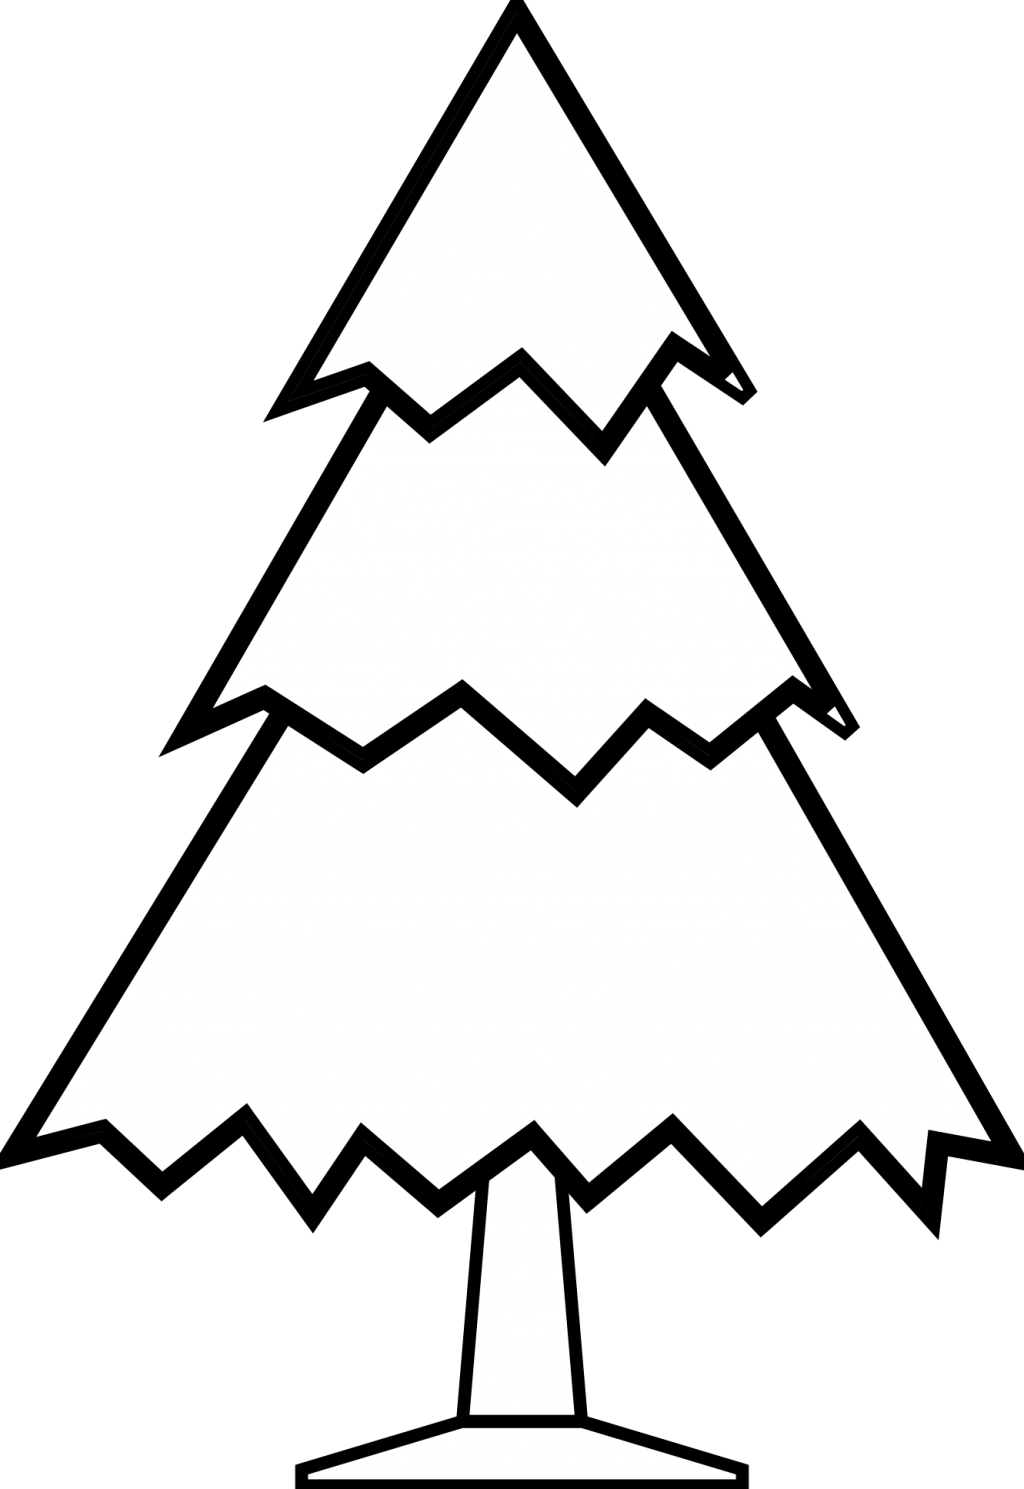 Christmas tree clipart black white png transparent stock baby nursery ~ Breathtaking Clip Art Black And White Xmas Trees ... png transparent stock